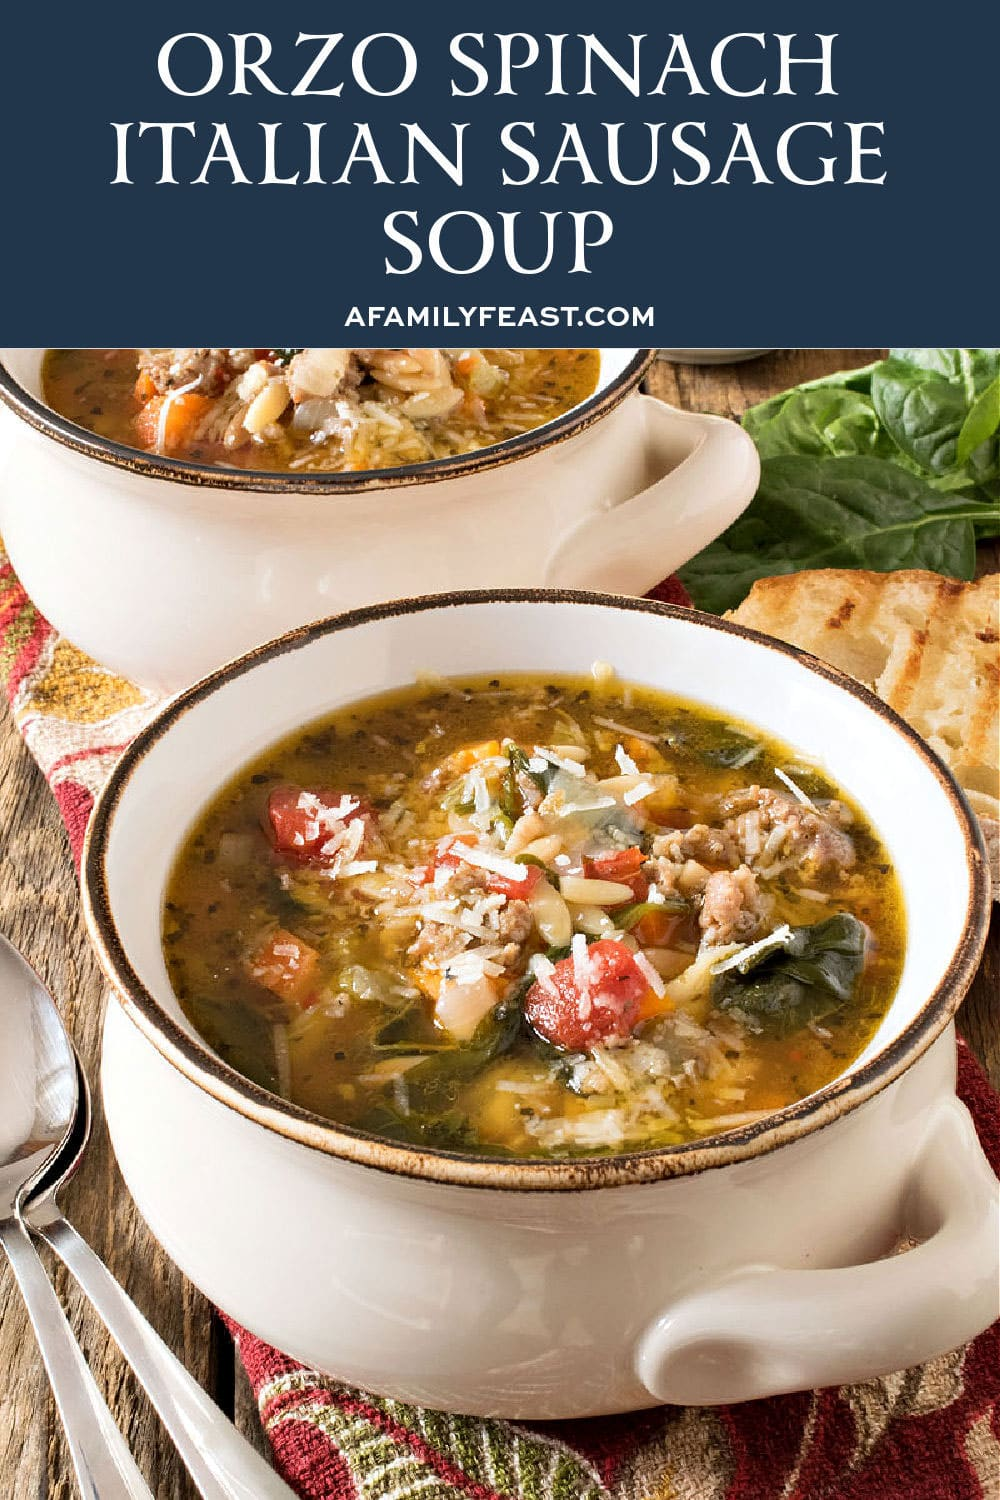 Orzo Spinach Italian Sausage Soup